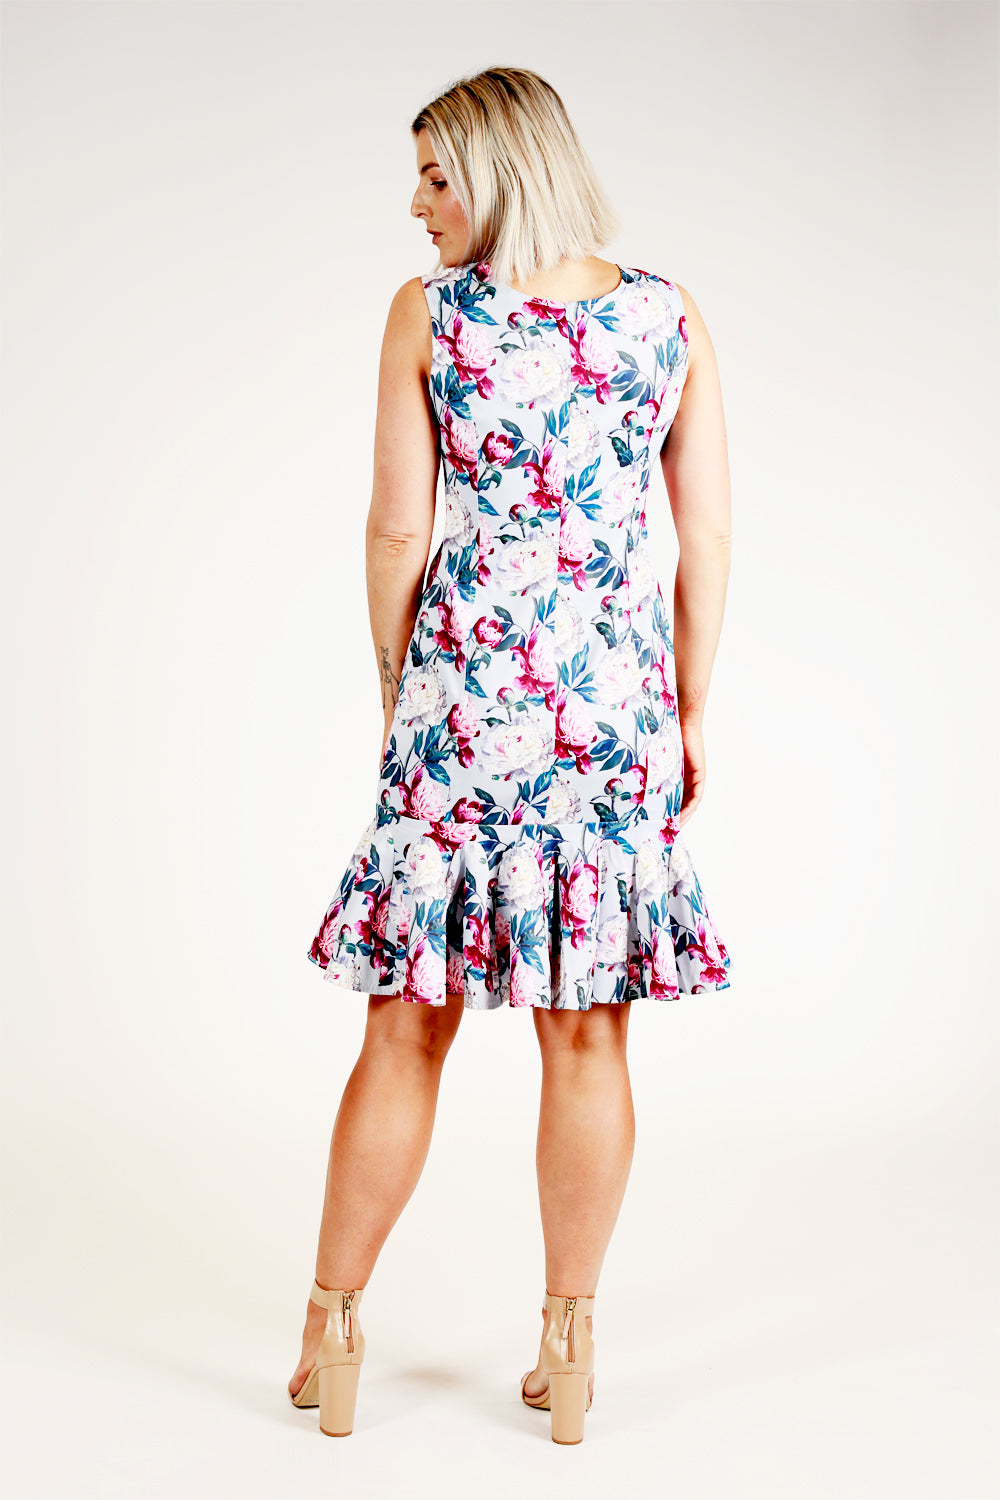 The Lost Lolly Dress - Sky Blue